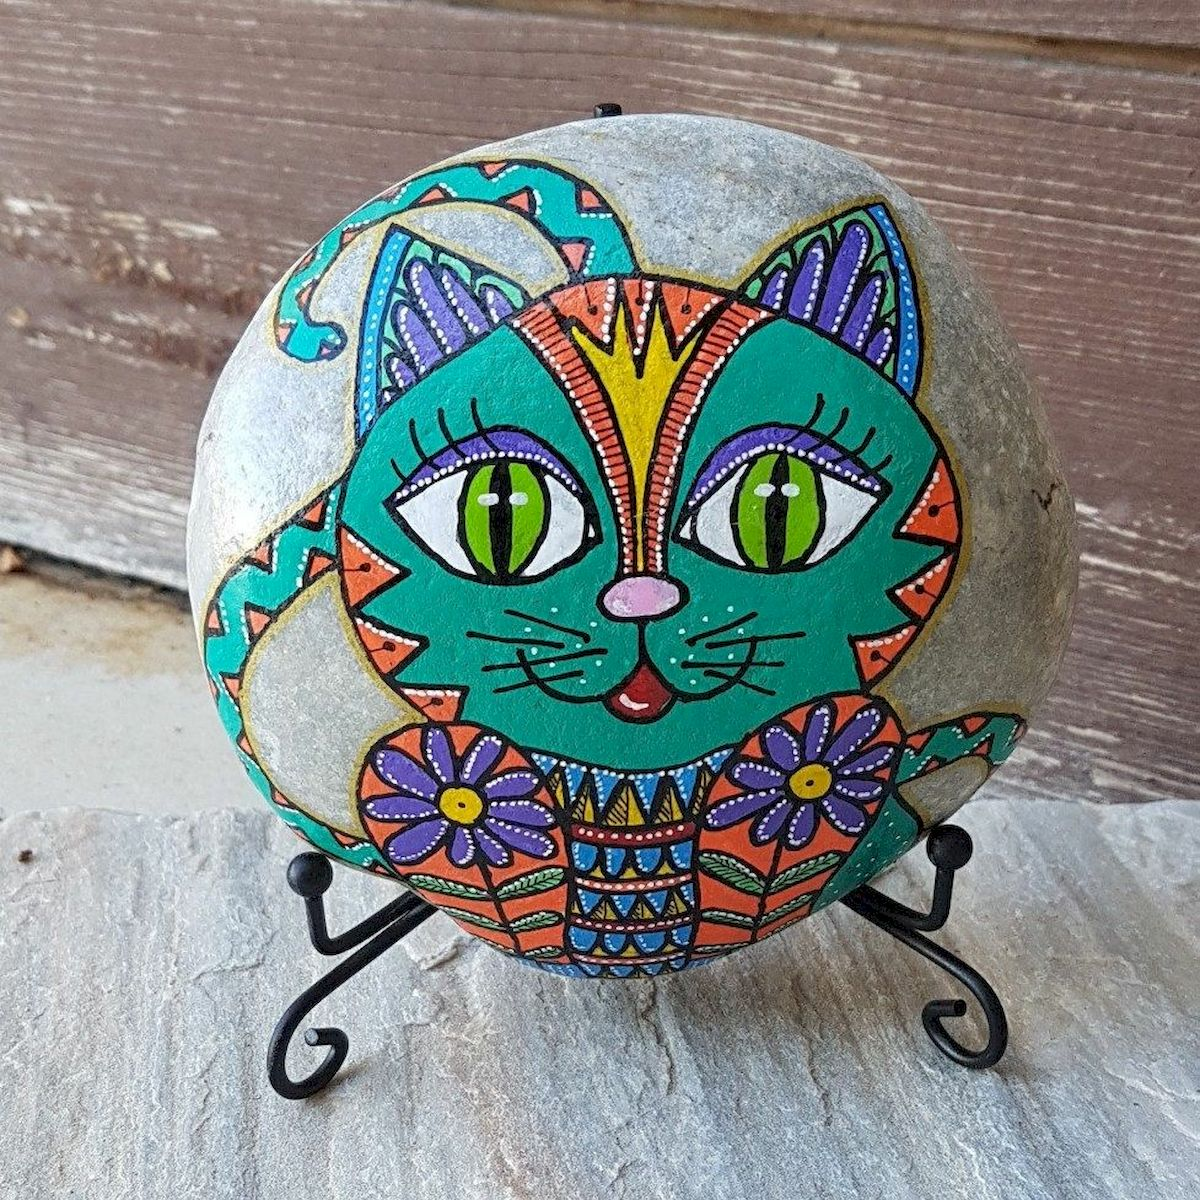 50 Best DIY Painted Rocks Animals Cats for Summer Ideas (8)